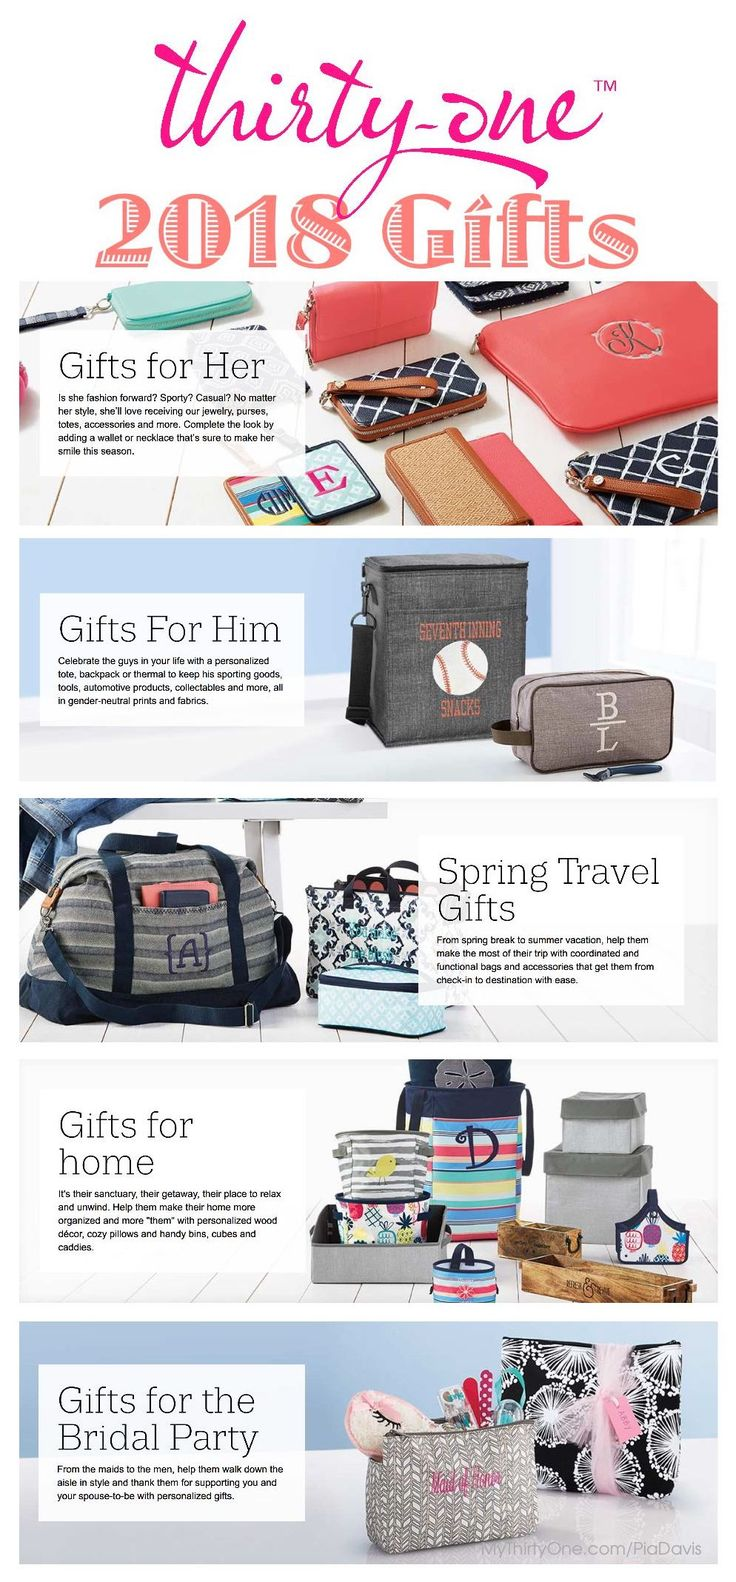 #31 Thirty-One Gifts for 2018... For Your HOME, For Your FAMILY & For YOURSELF. Bright & Bold, Seasonal Colors, Neutral Base, Solids, Novelty Prints, Black & White. Handbags, Crossbody & Shoulder Bags, Backpacks, Travel Bags & Luggage, Wallets & Totes, Small & Large Thermals, Storage & Organization, Pillows & Wall Art, Home Accessories & Utility… See all these great items at MyThirtyOne.com.com/PiaDavis or go to the upper right hand corner to select your consultant.